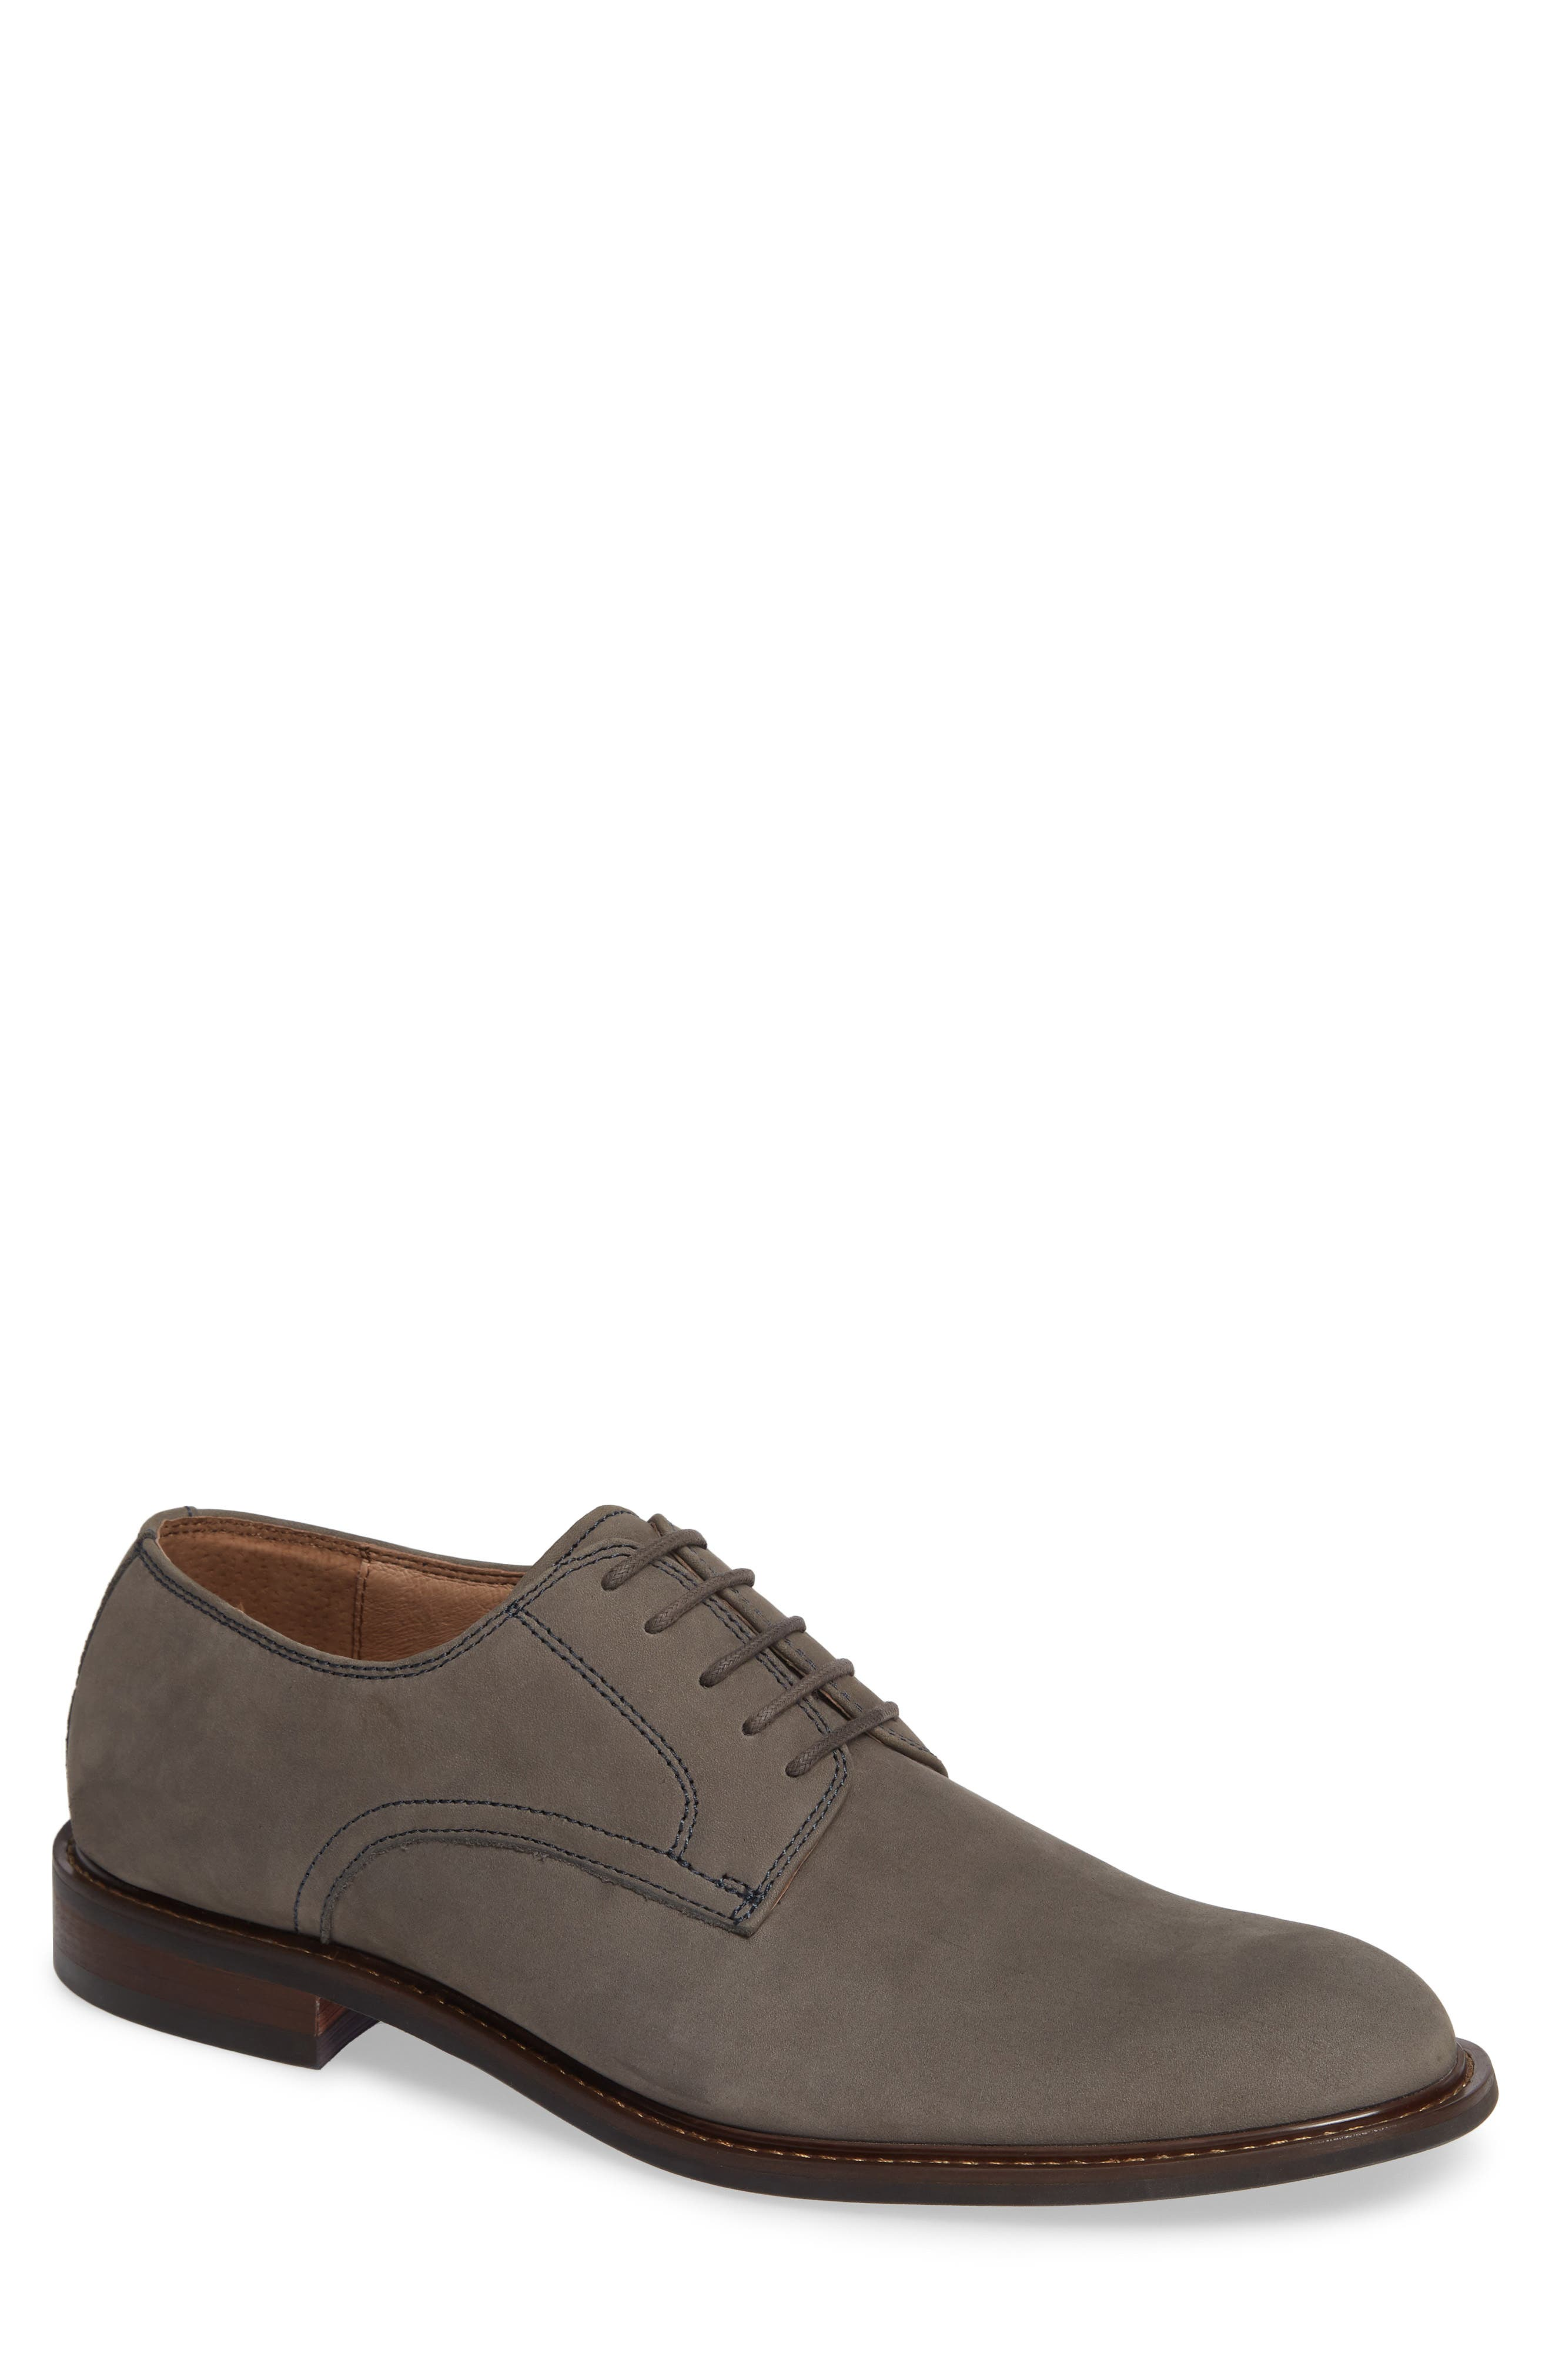 Richland Buck Shoe,                             Main thumbnail 1, color,                             GREY SUEDE